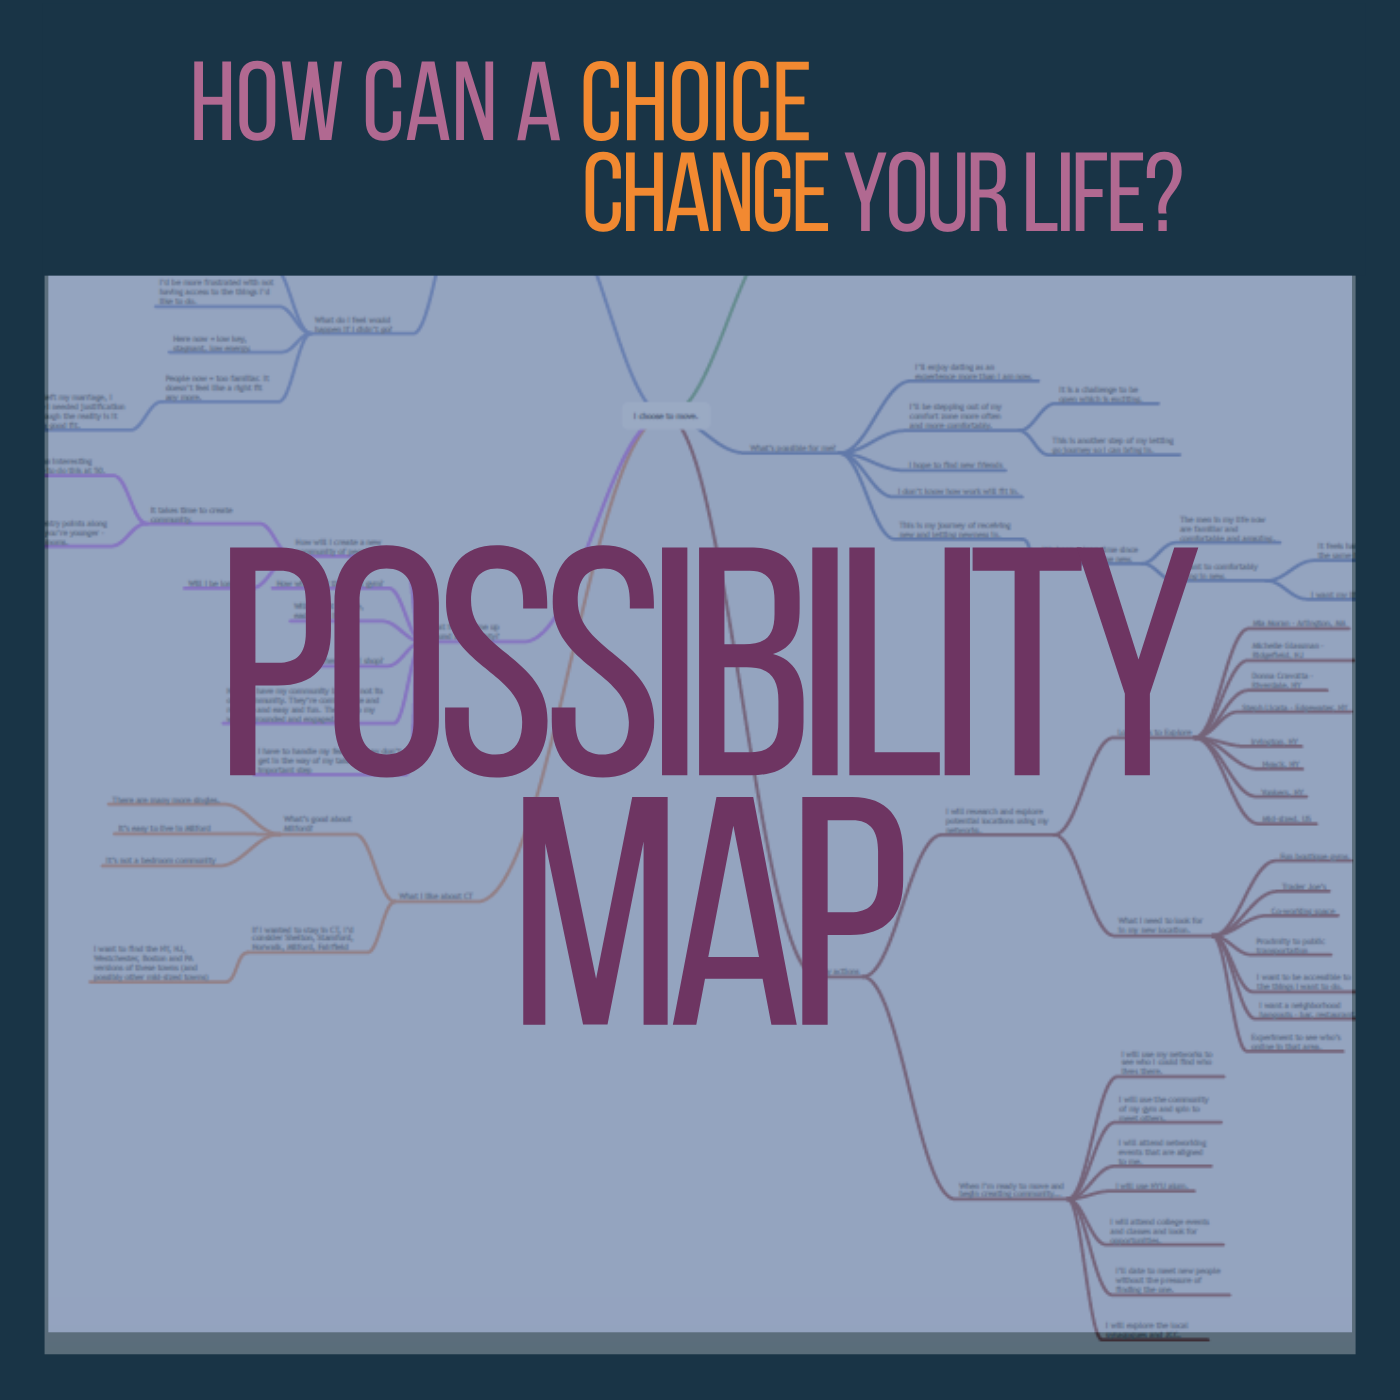 Exploration Map: How Can a Choice Change Your Life?